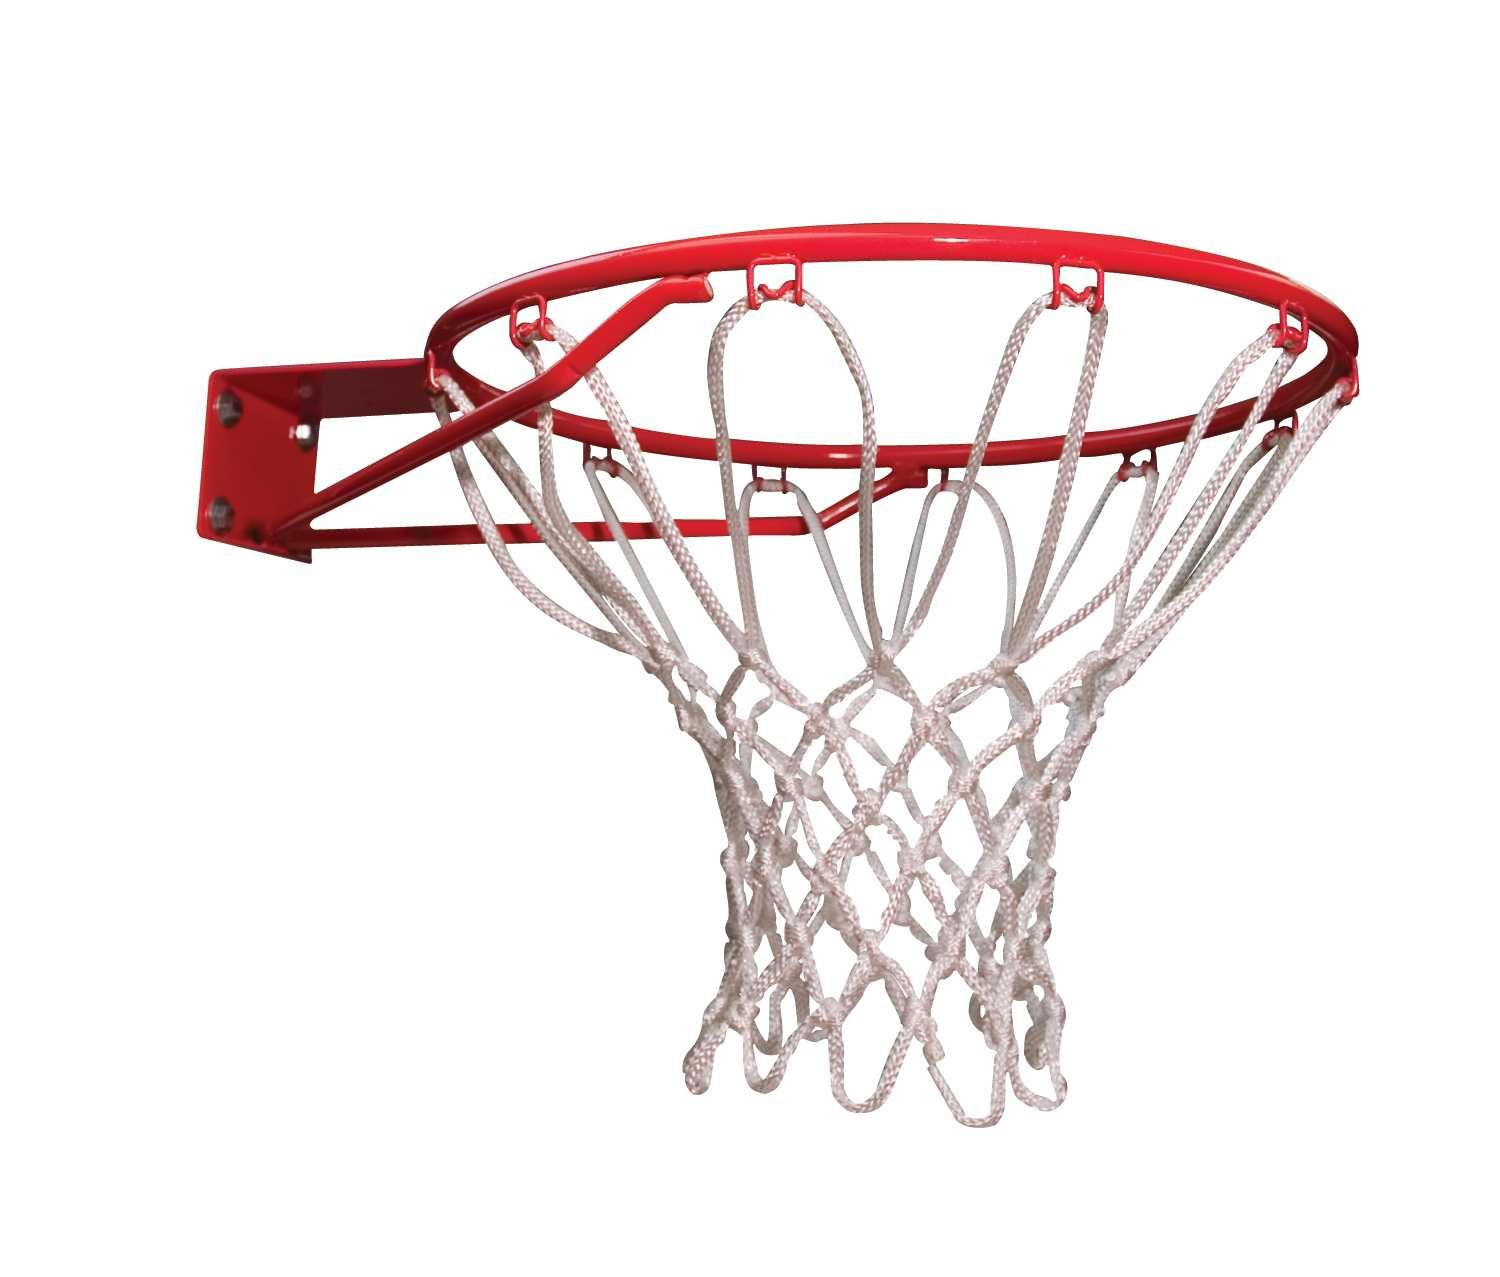 Lifetime 90040 Height Adjustable Portable Basketball System, 44 Inch Backboard by Lifetime (Image #3)